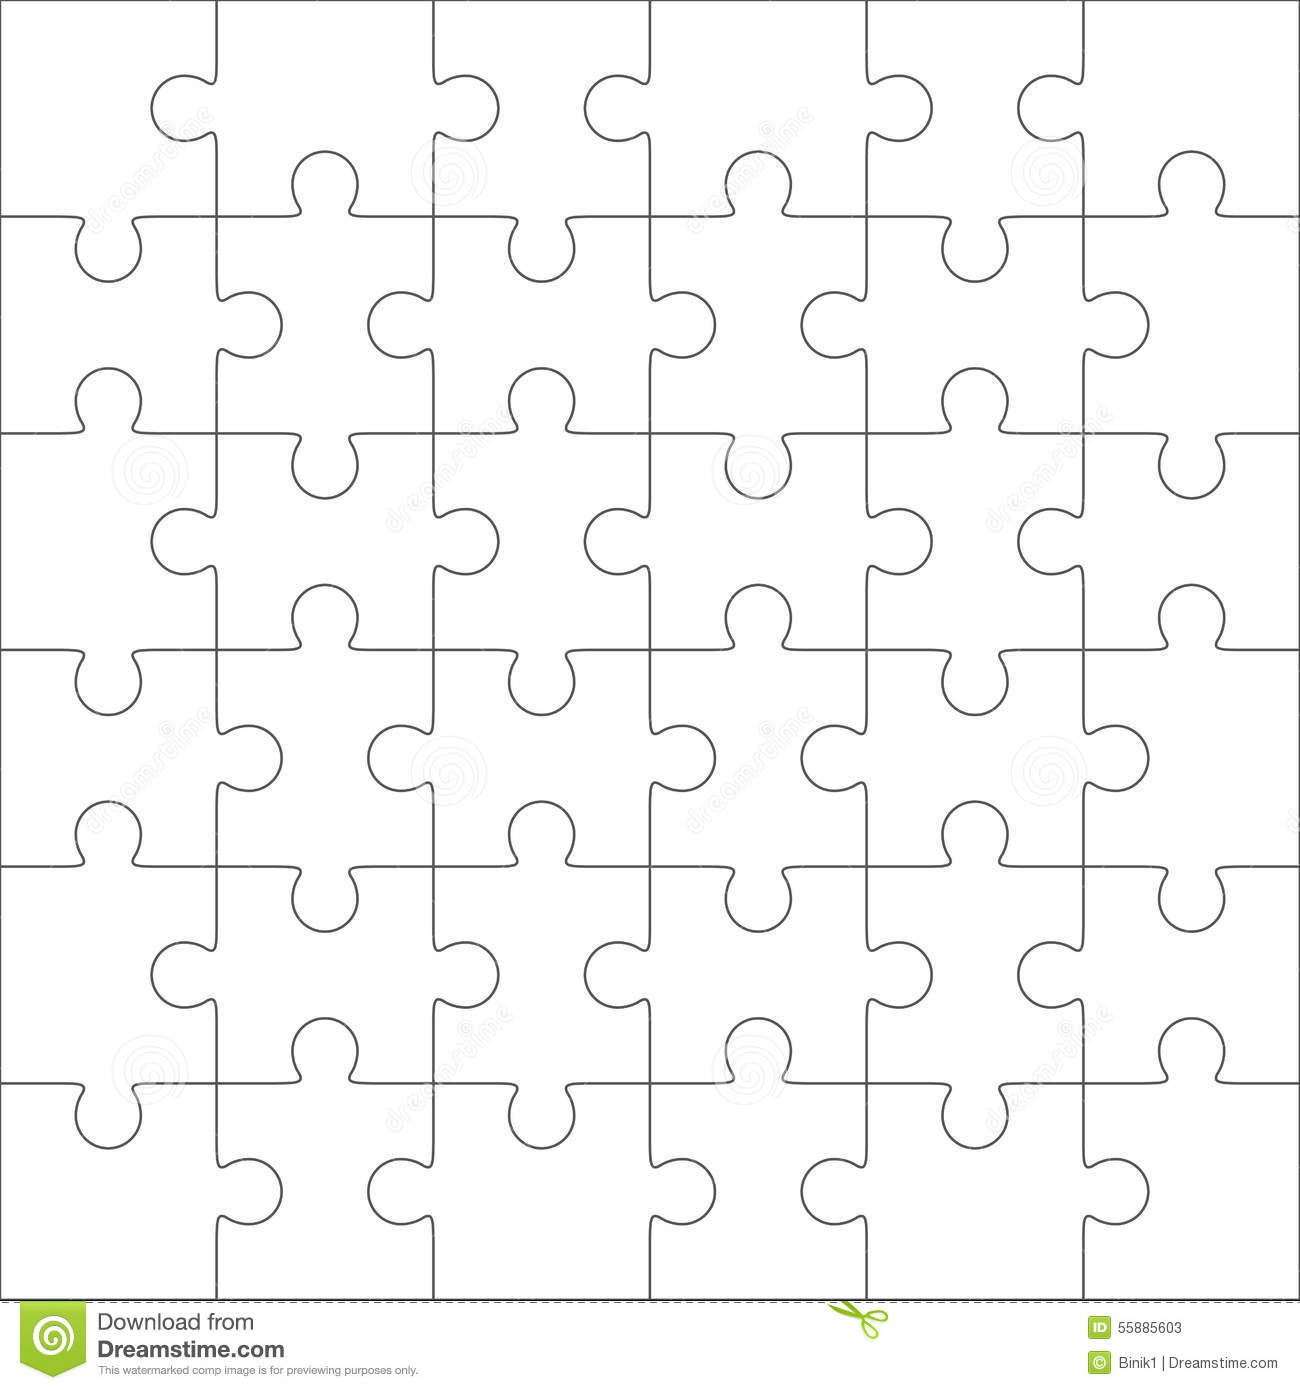 Jigsaw Puzzle Blank Template, 36 Pieces Stock Vector - Image: 55885603